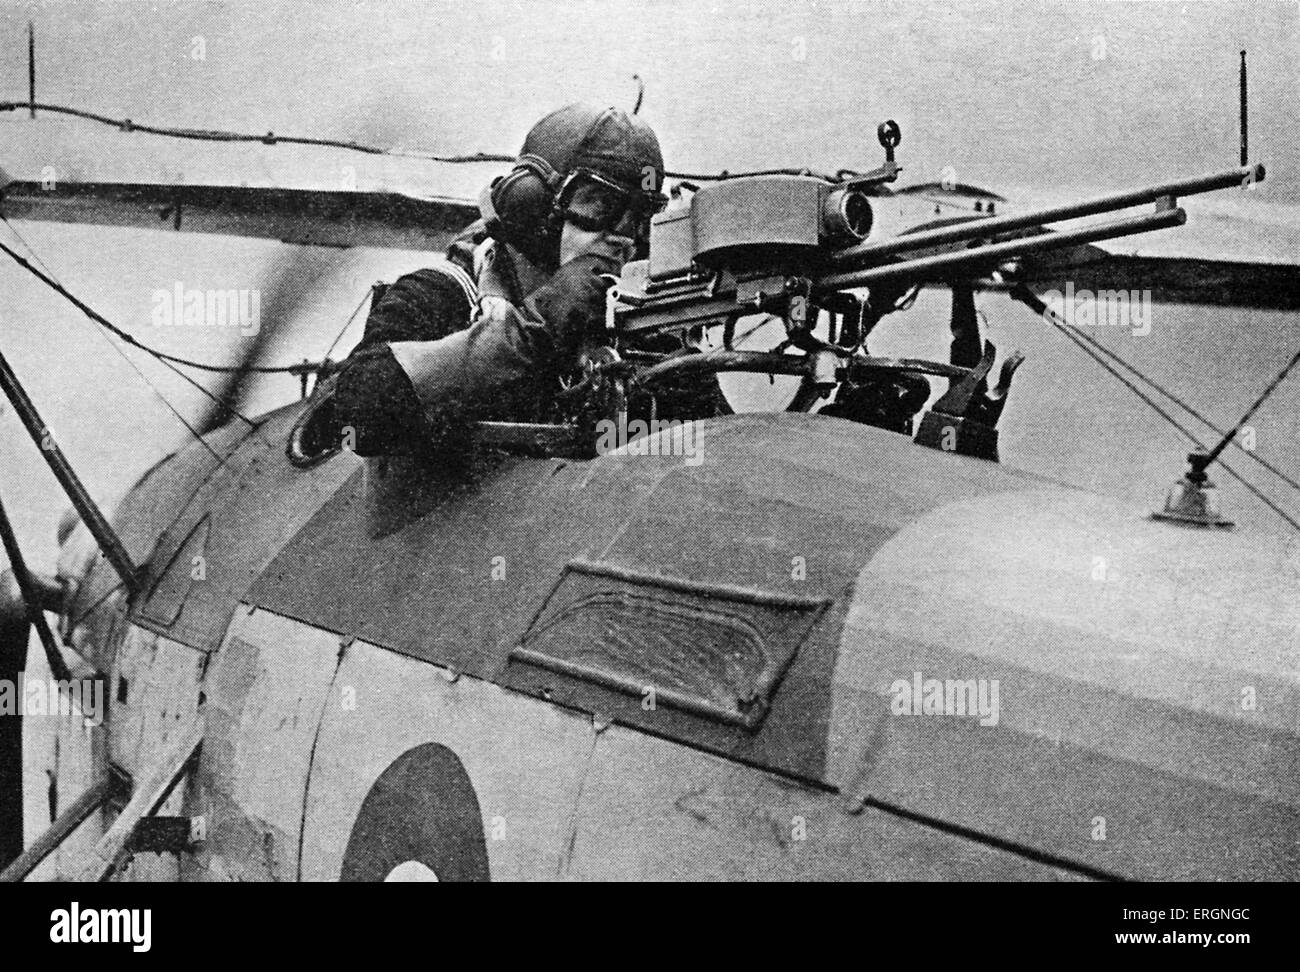 WW2 -RAF Gunnery Training. Man in open cockpit of a biplane training for the Fleet Air Arm. - Stock Image